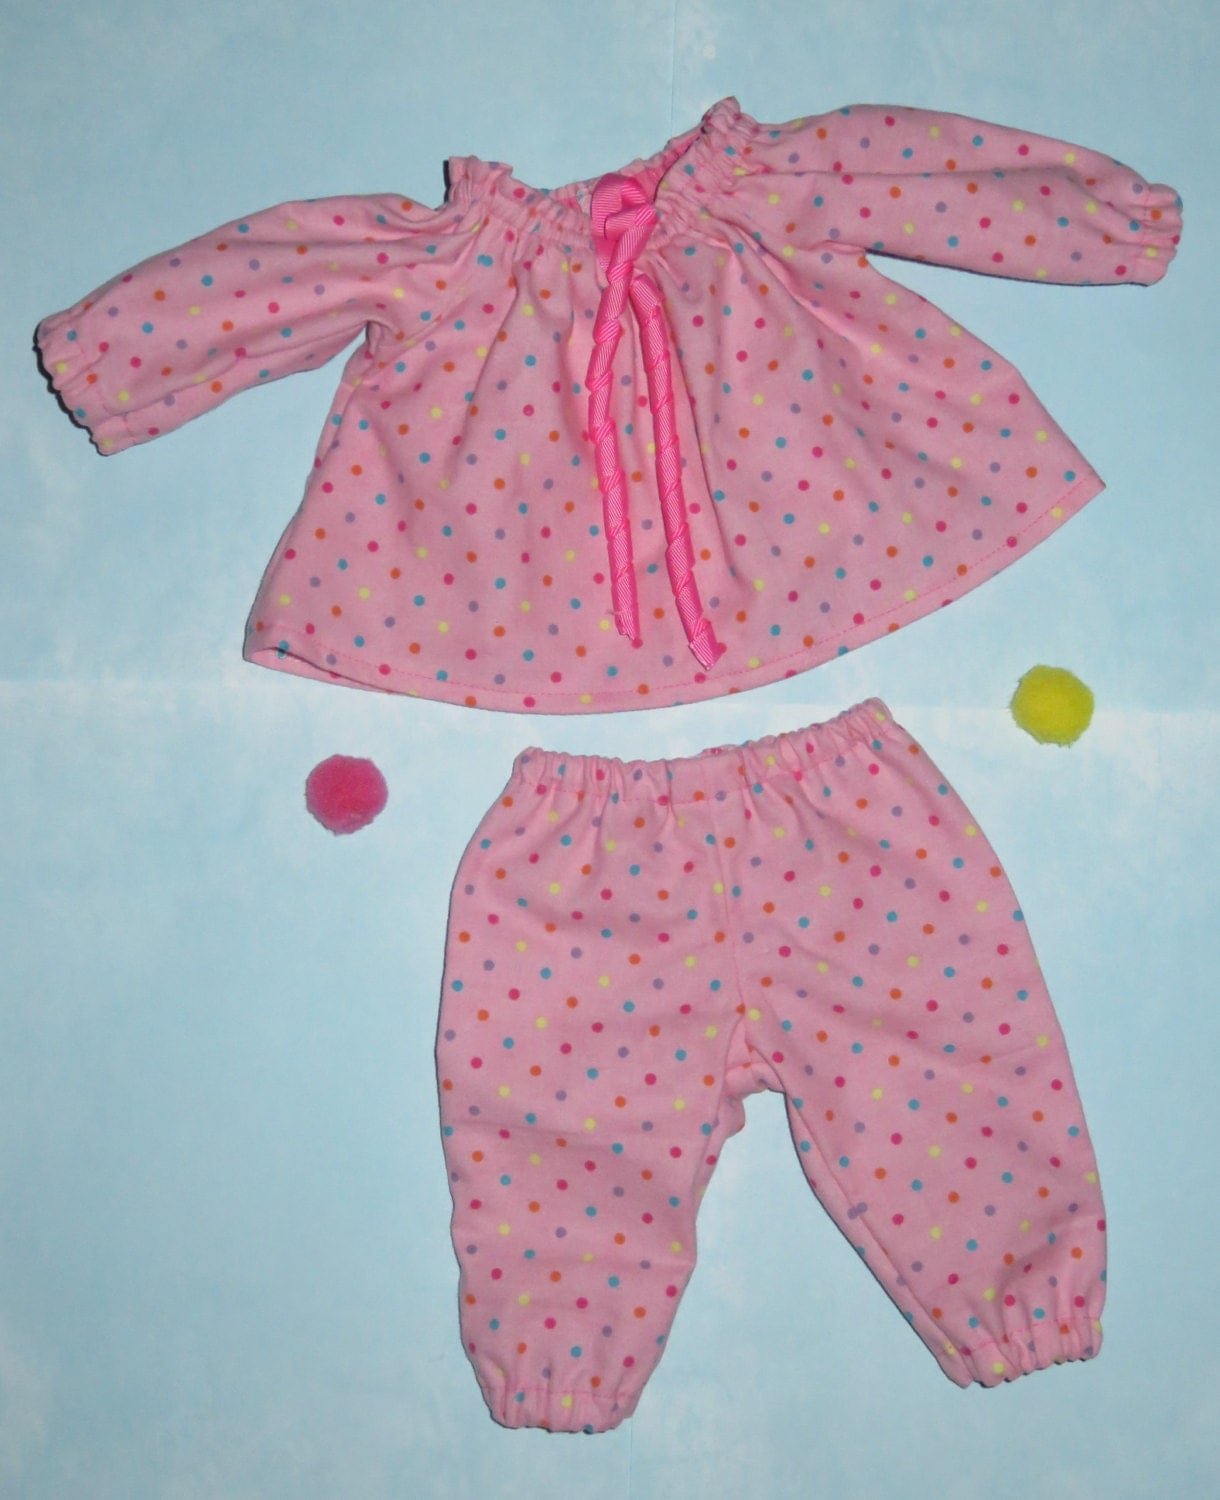 Handmade 18 20 Inch Baby Doll Clothes Dot to Dot by